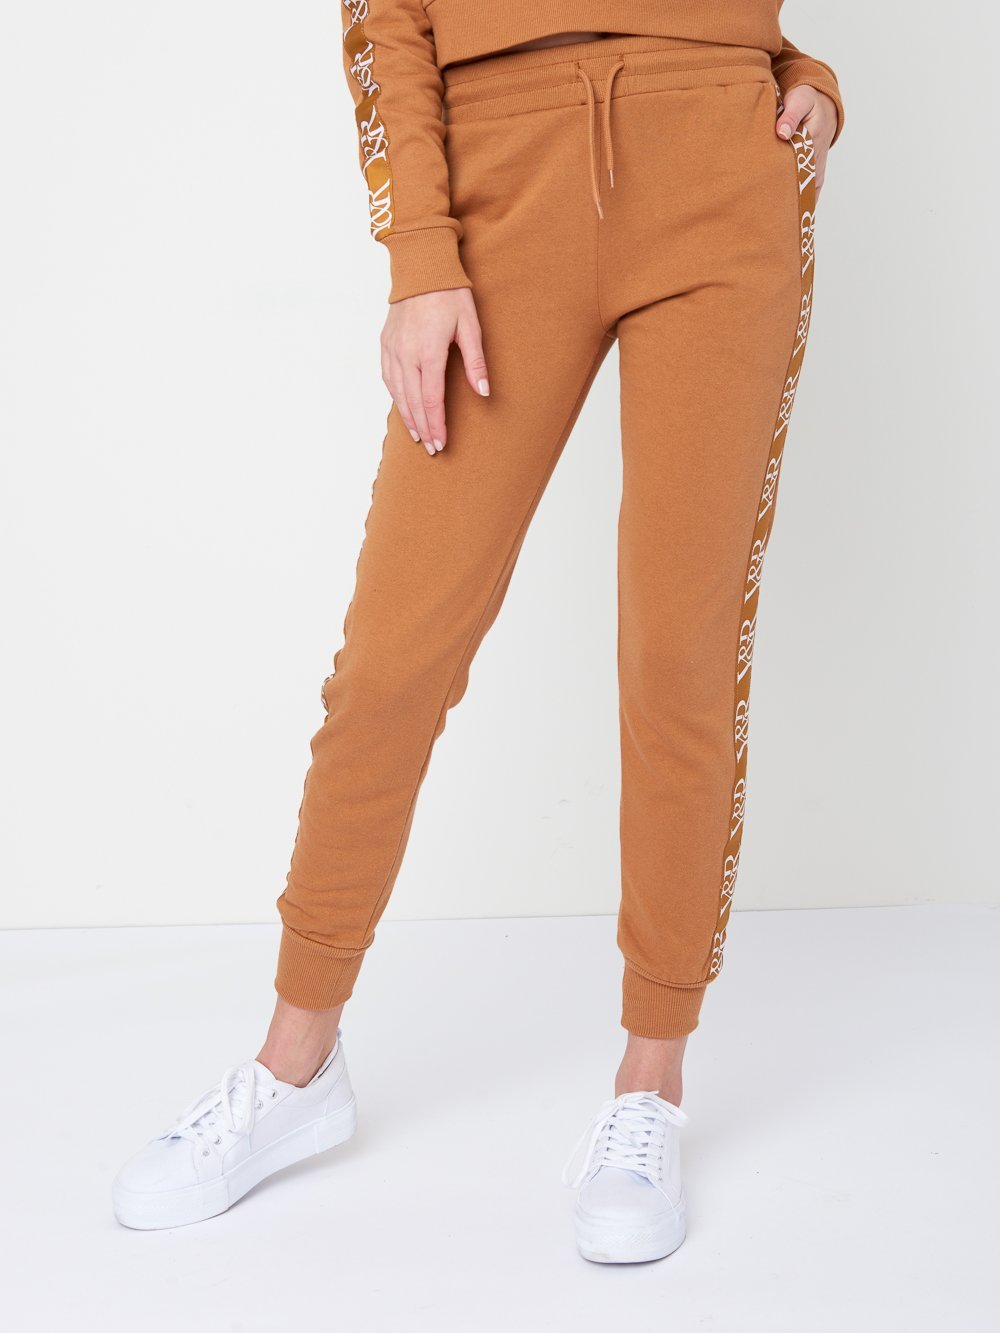 Reckless Girls Womens - Bottoms - Pants Kimberly Sweatpants- Orange